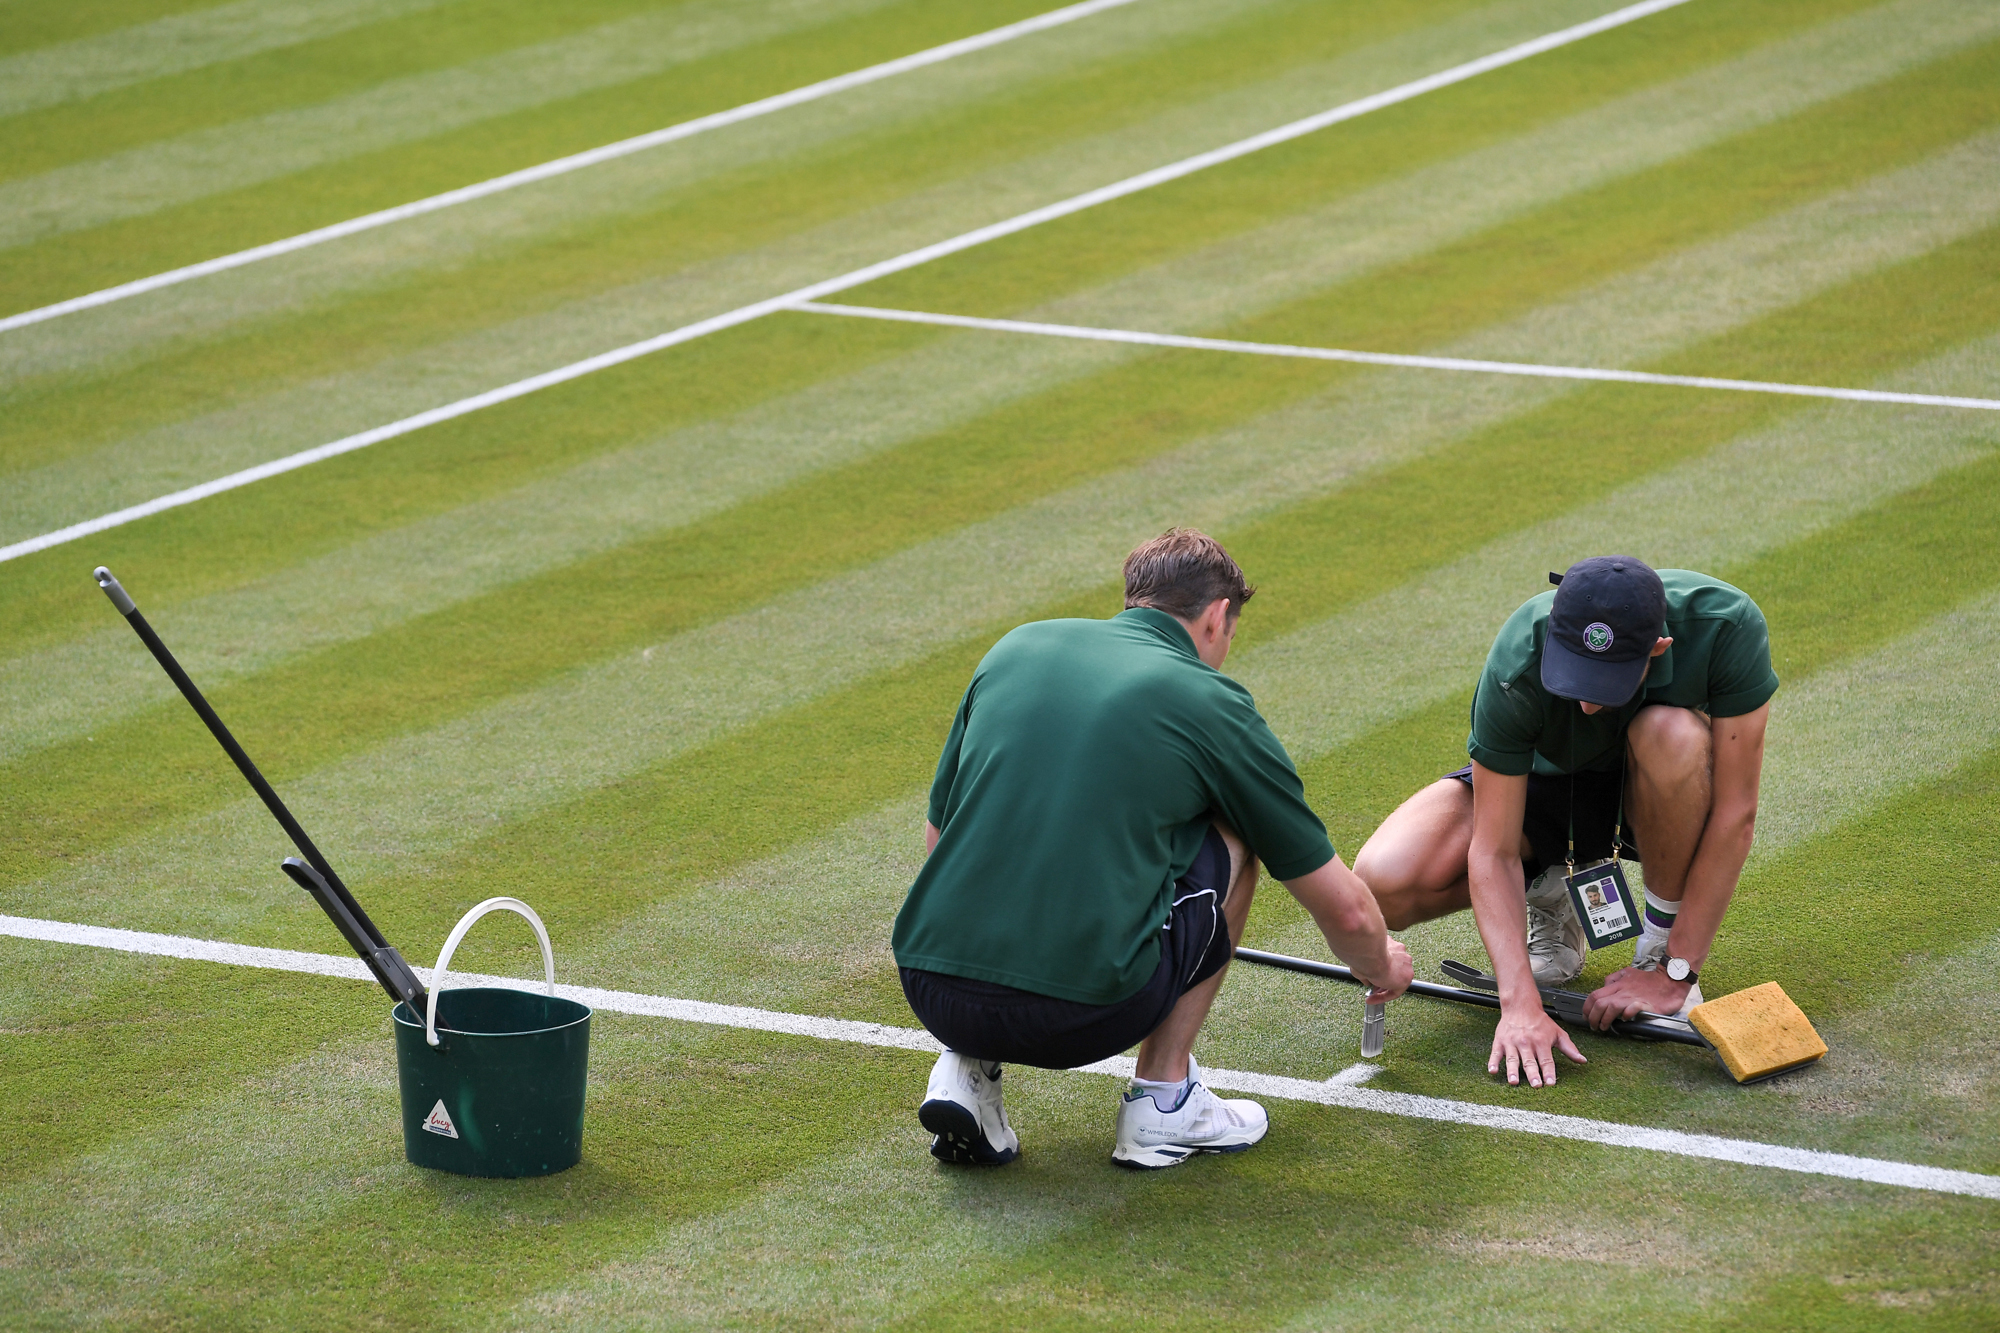 Ground Staff preparing the courts